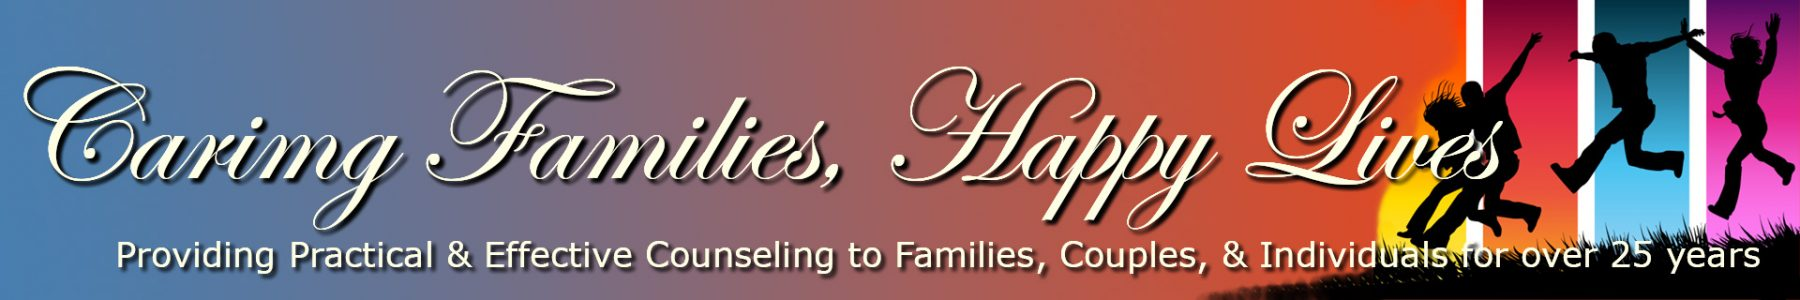 Caring Families, Happy Lives Banner